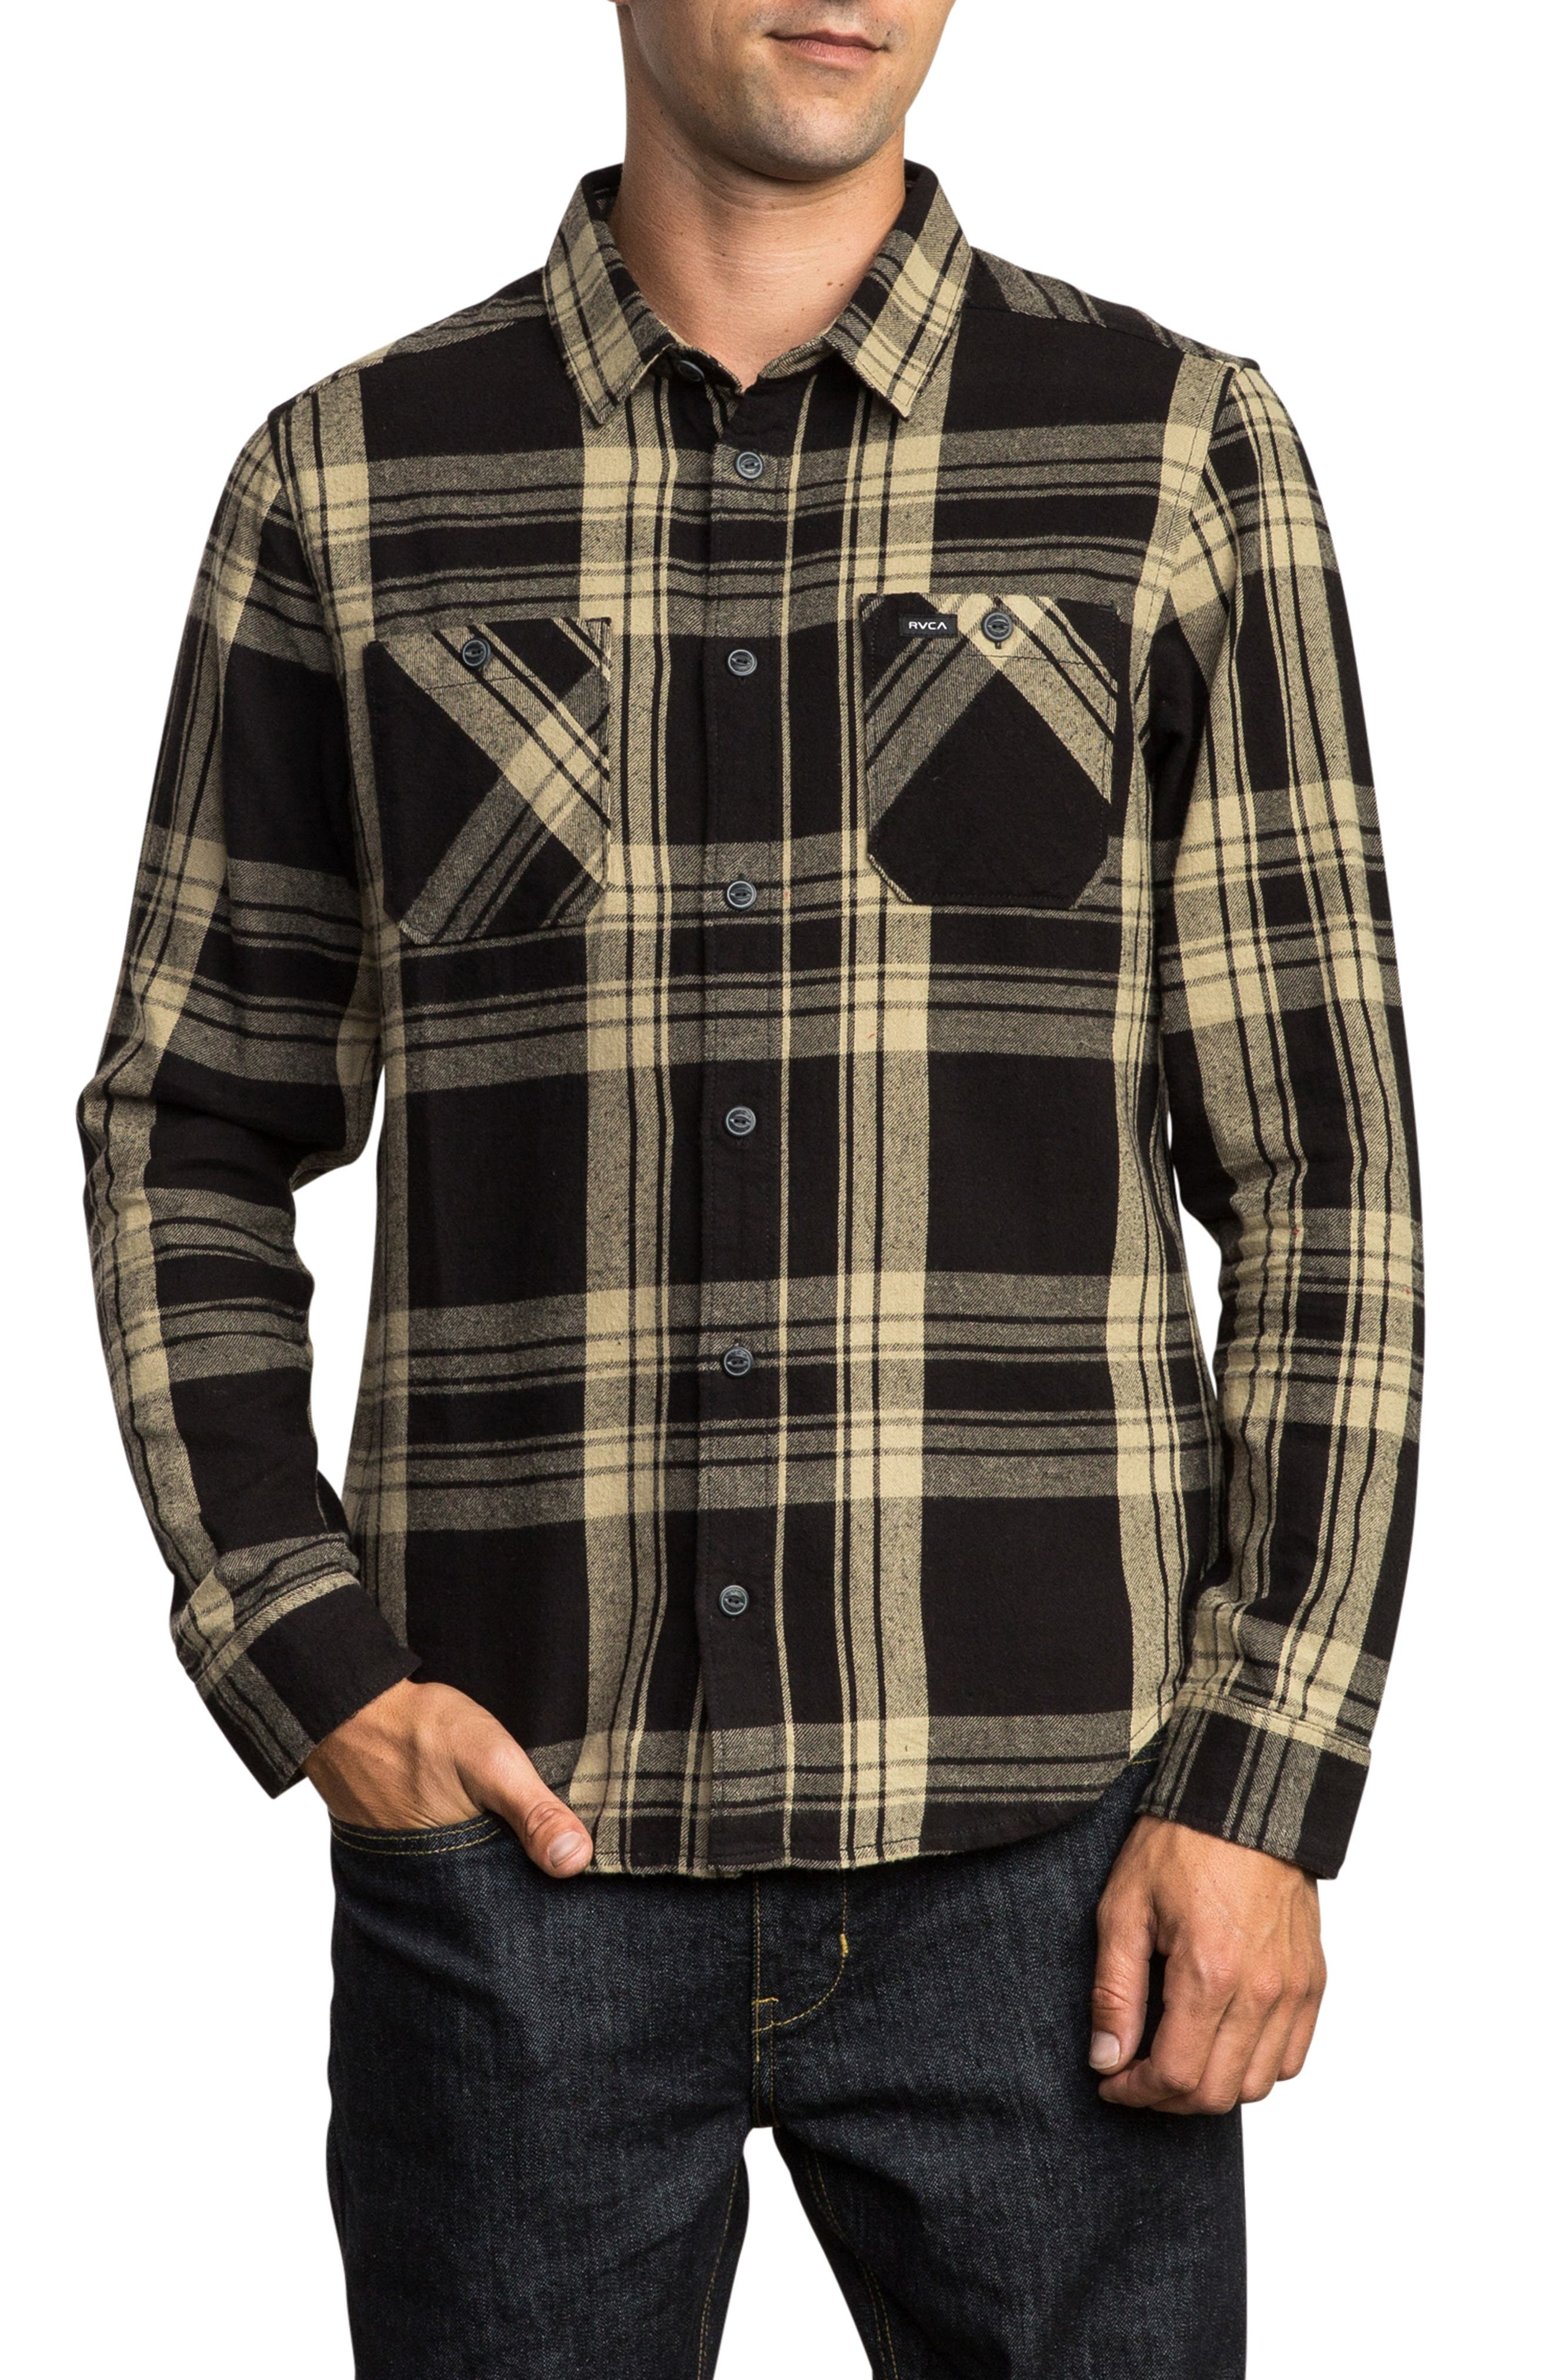 Rvca Wanted Flannel Shirt, Black